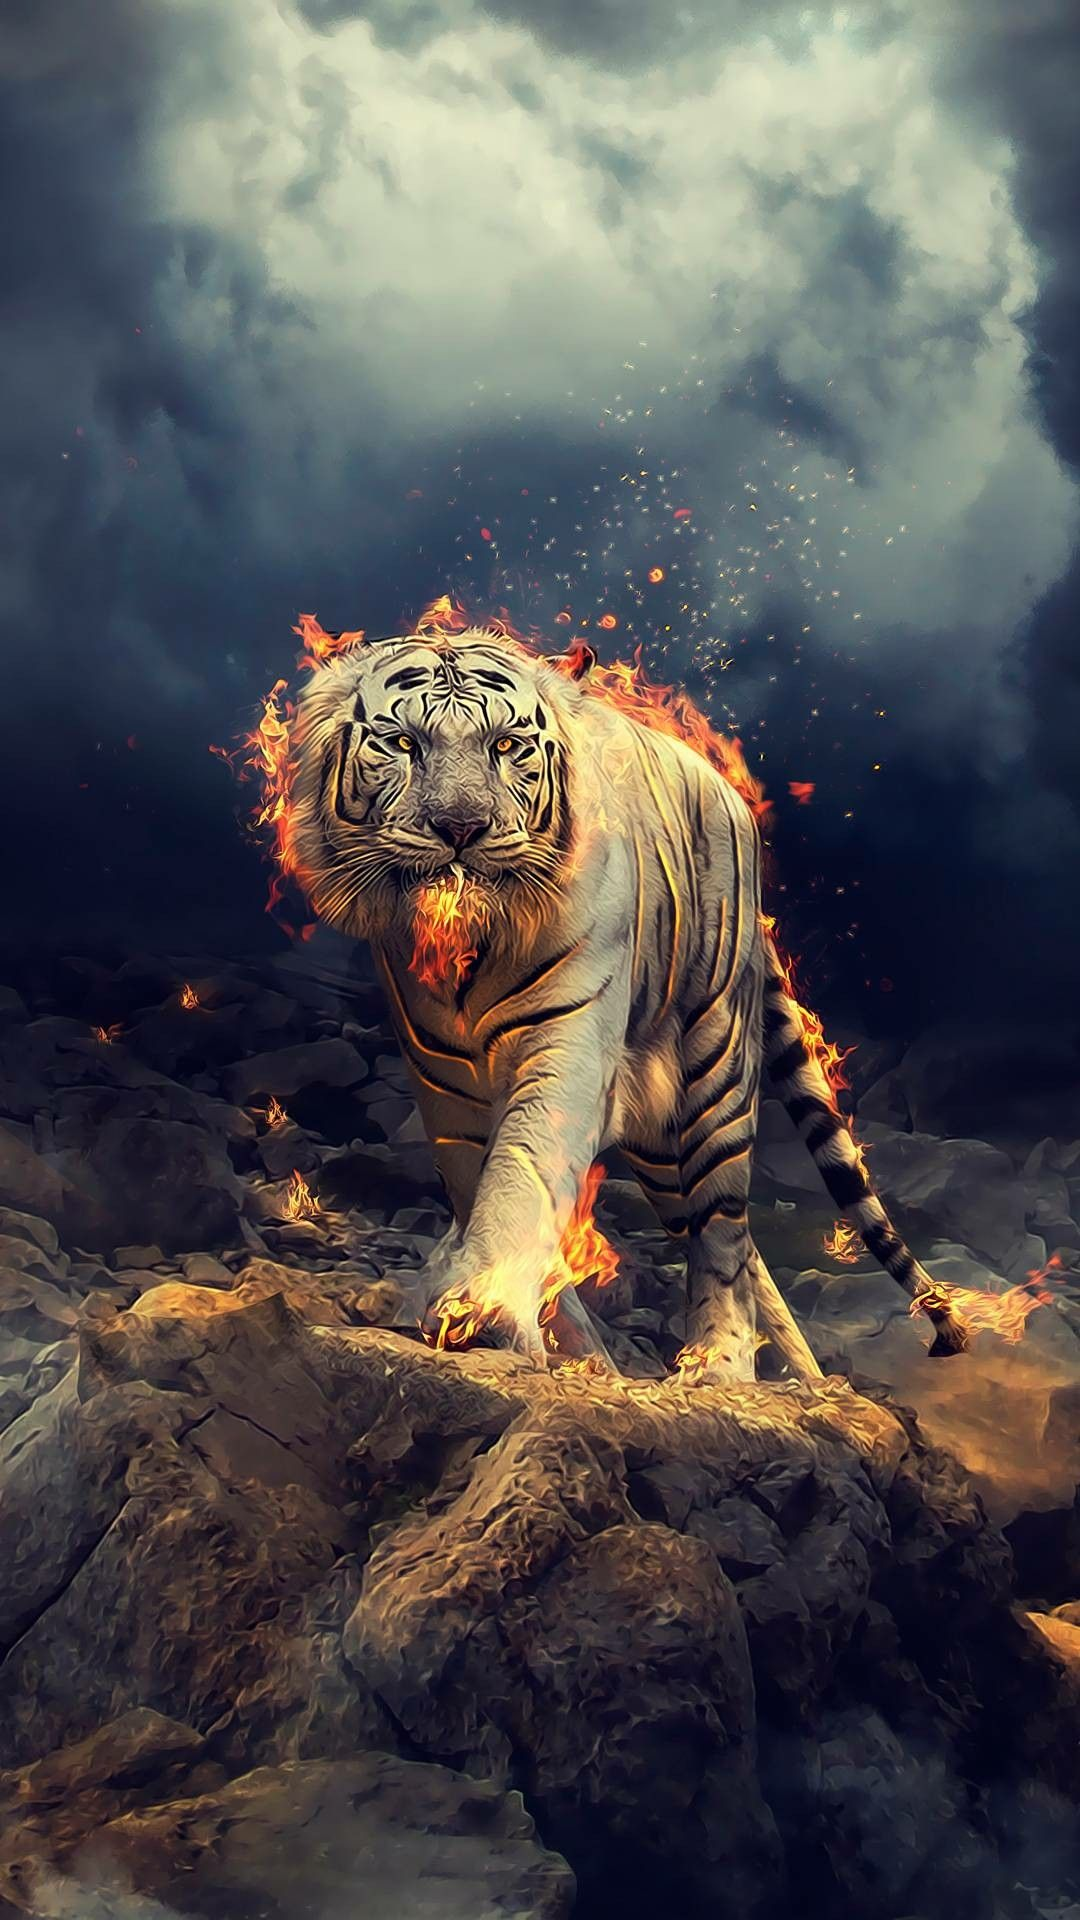 Fire Tiger Tiger Wallpaper Wild Animal Wallpaper Lion Wallpaper